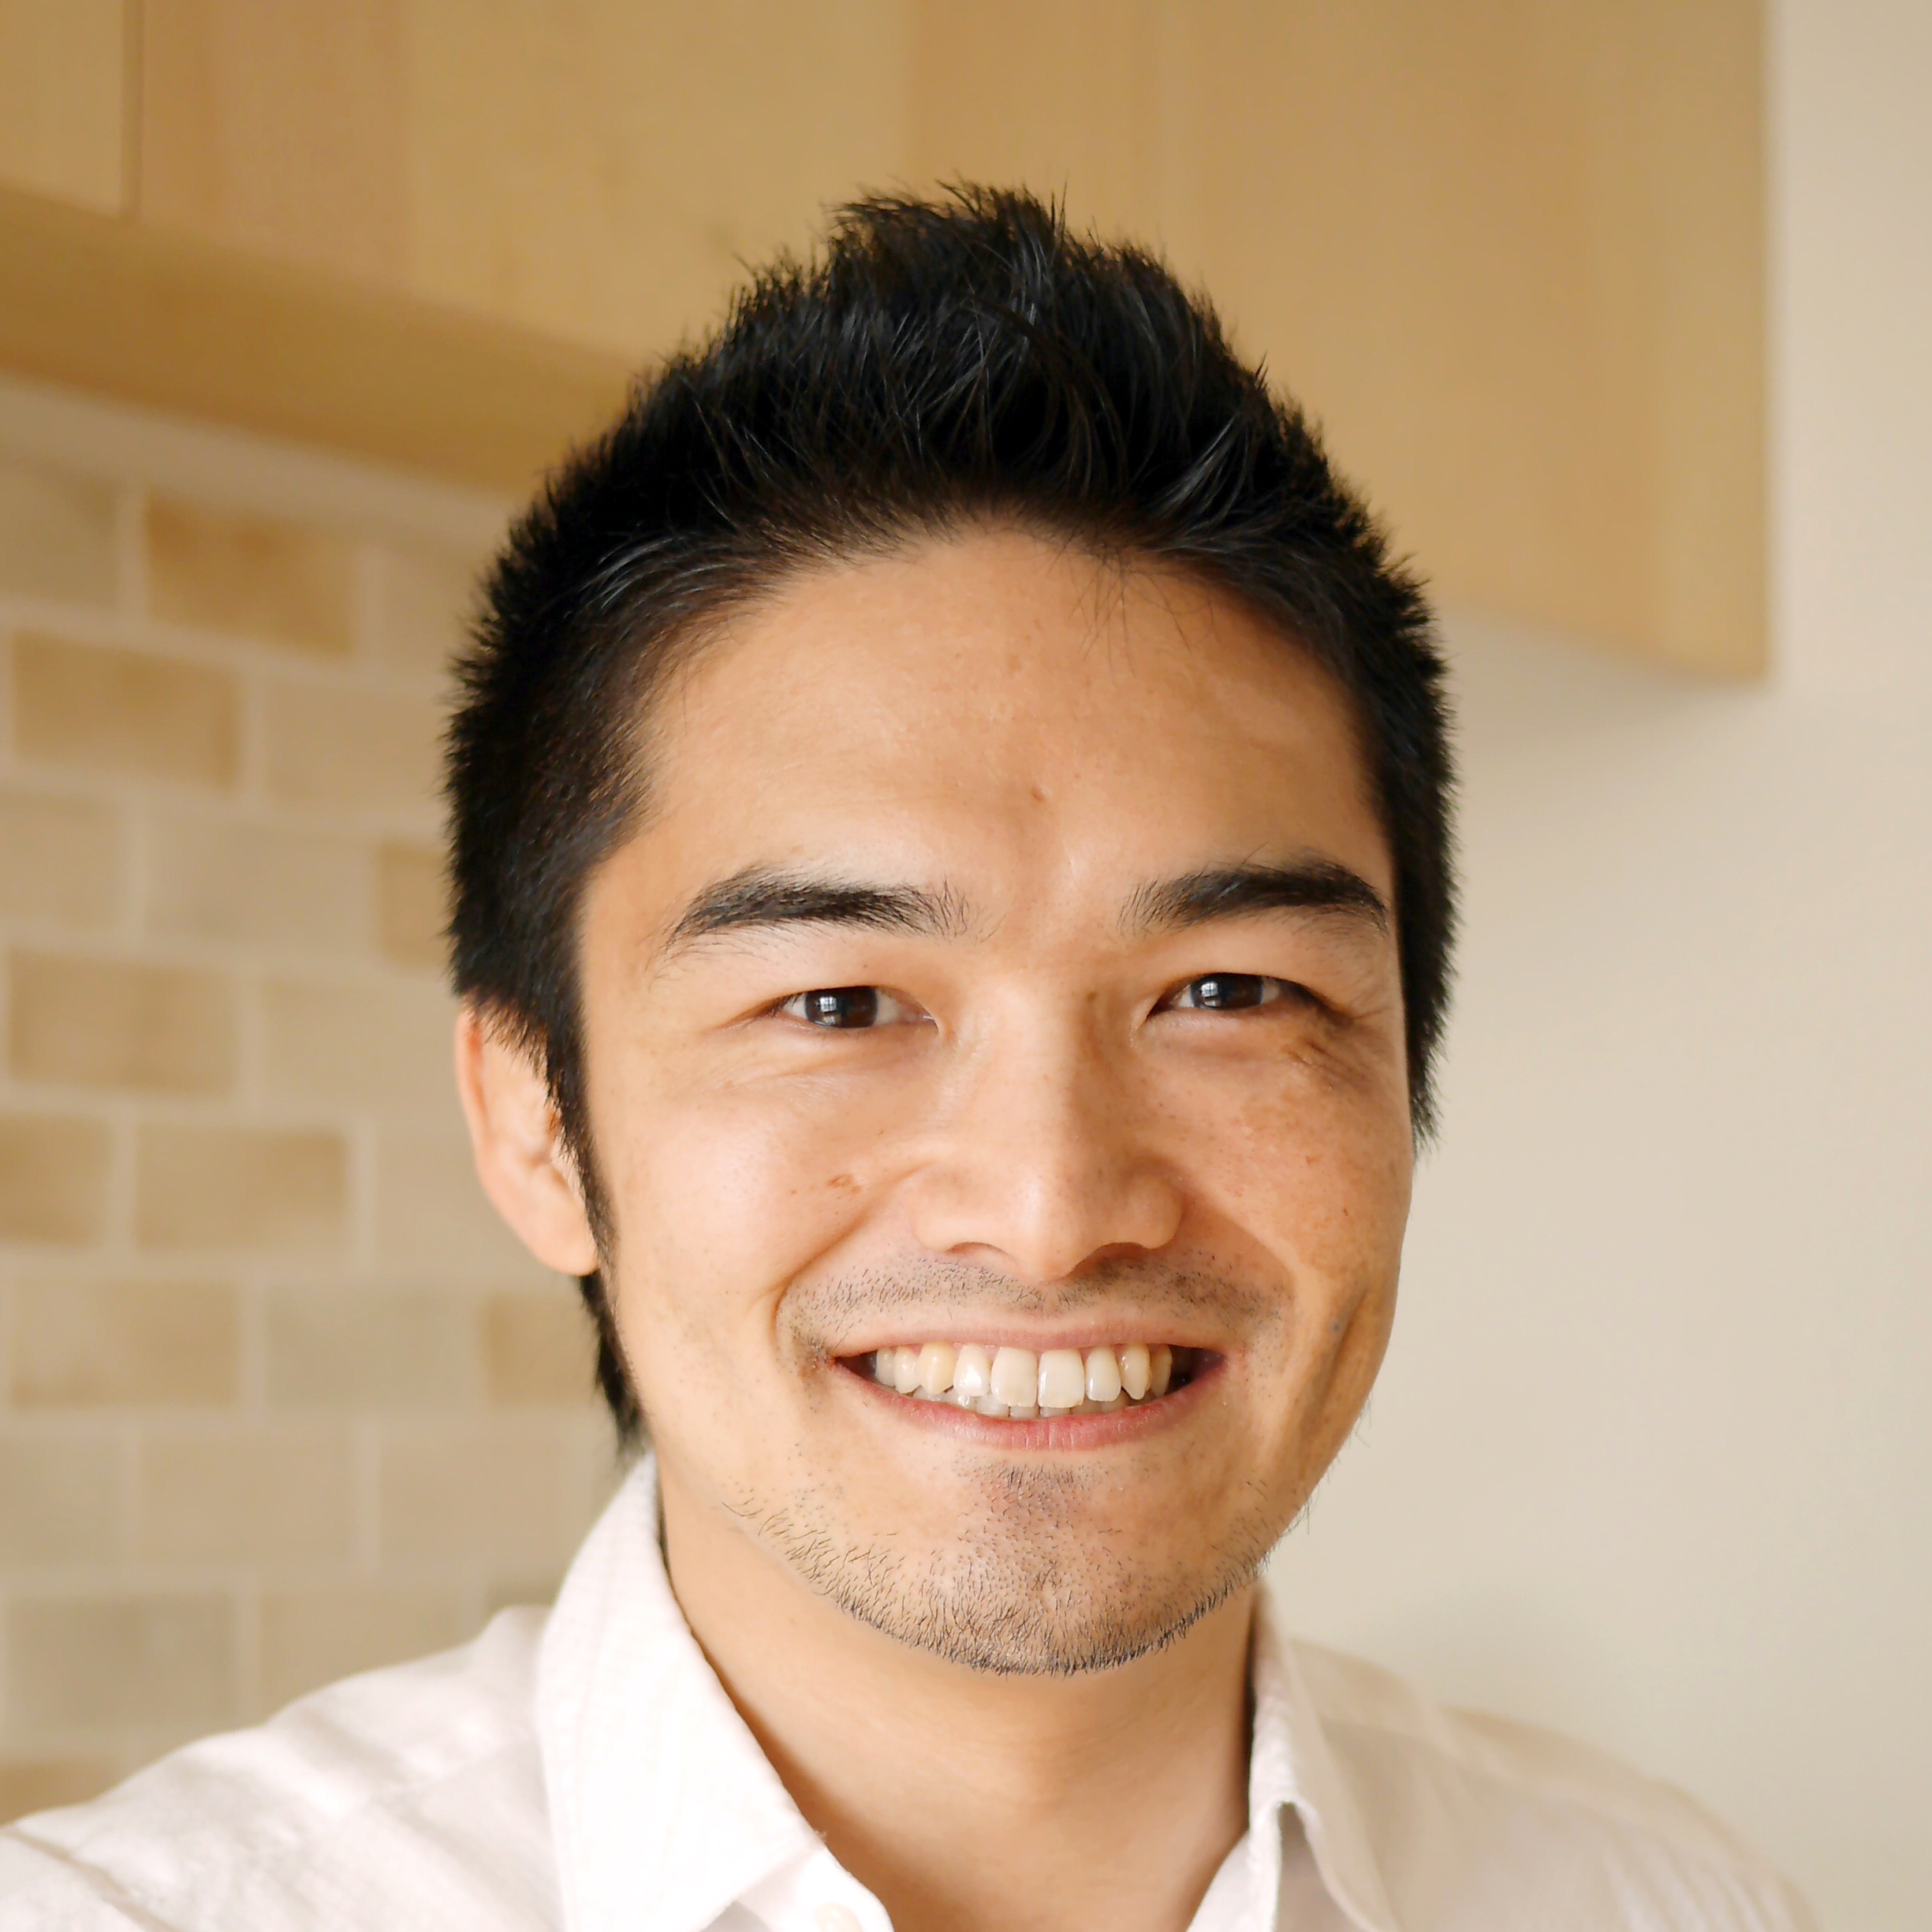 Akihisa Kaneko - Leader of Smart Kitchen Group, Cookpad Inc.Akihisa is currently the Group Leader of Smart Kitchen Group at Cookpad Inc., where he is launching a Smart Kitchen service called